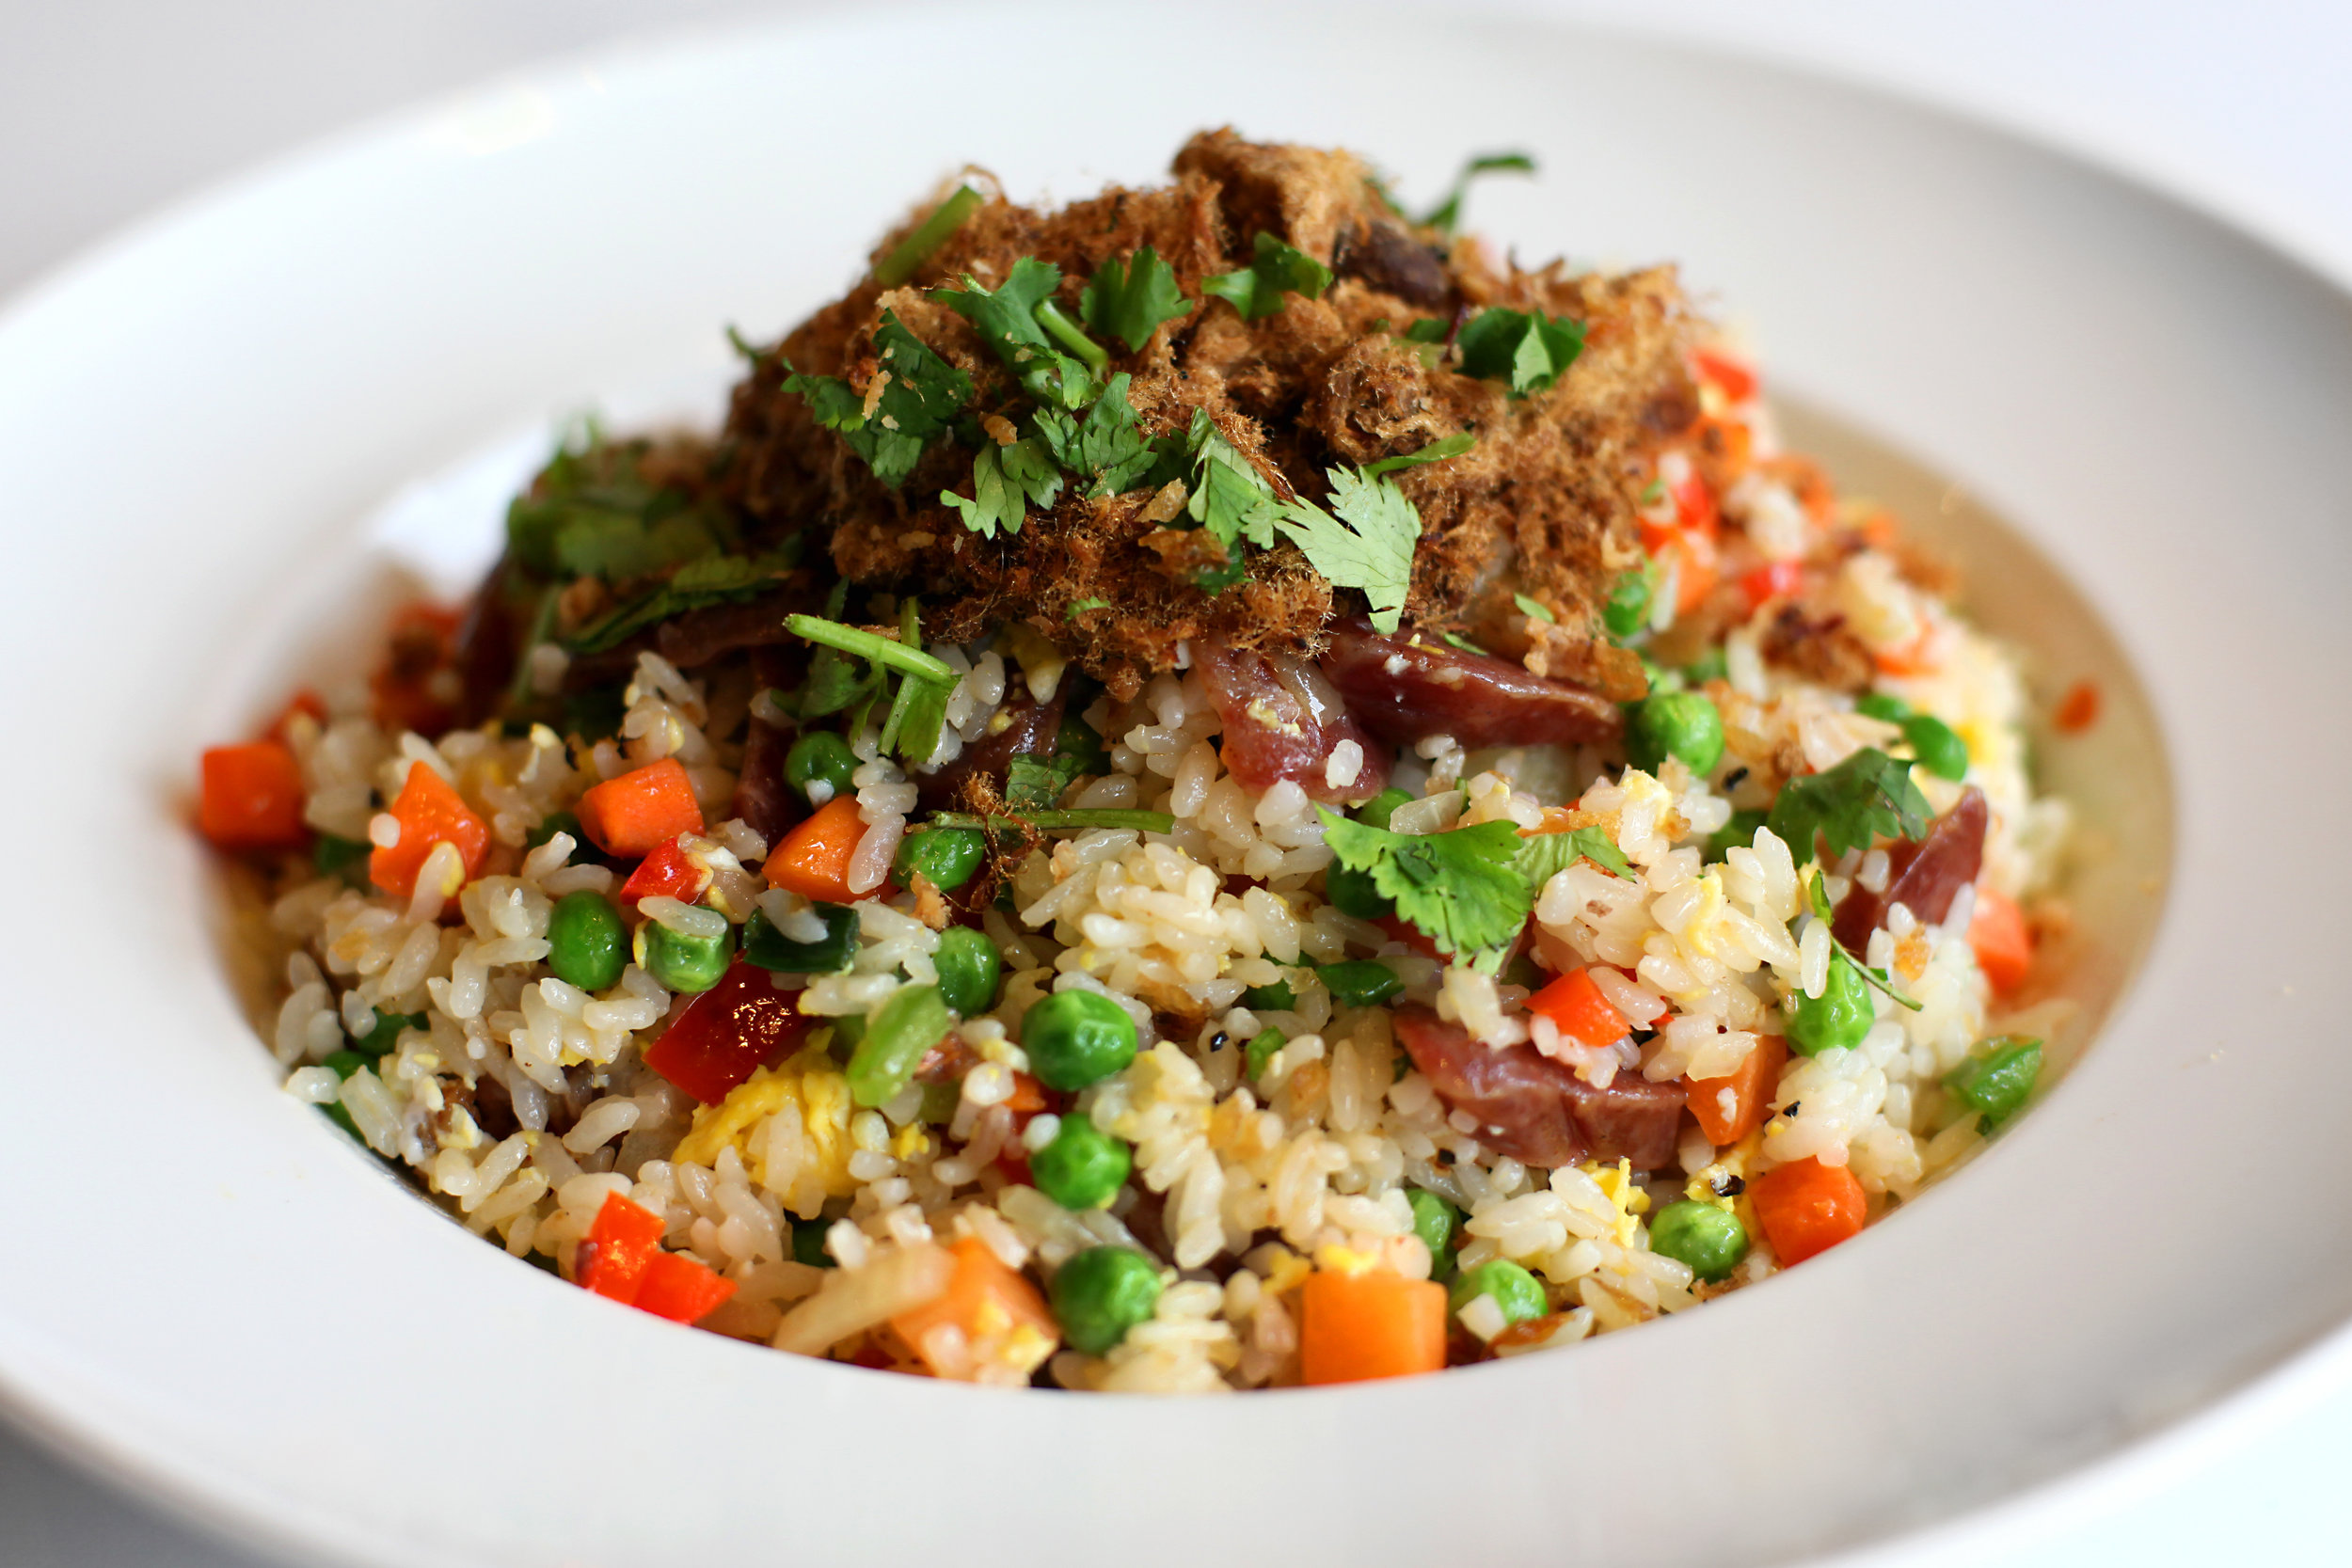 Savory and sweet sausage fried rice with peas and carrots and topped with pork fluff. A homestyle favorite!